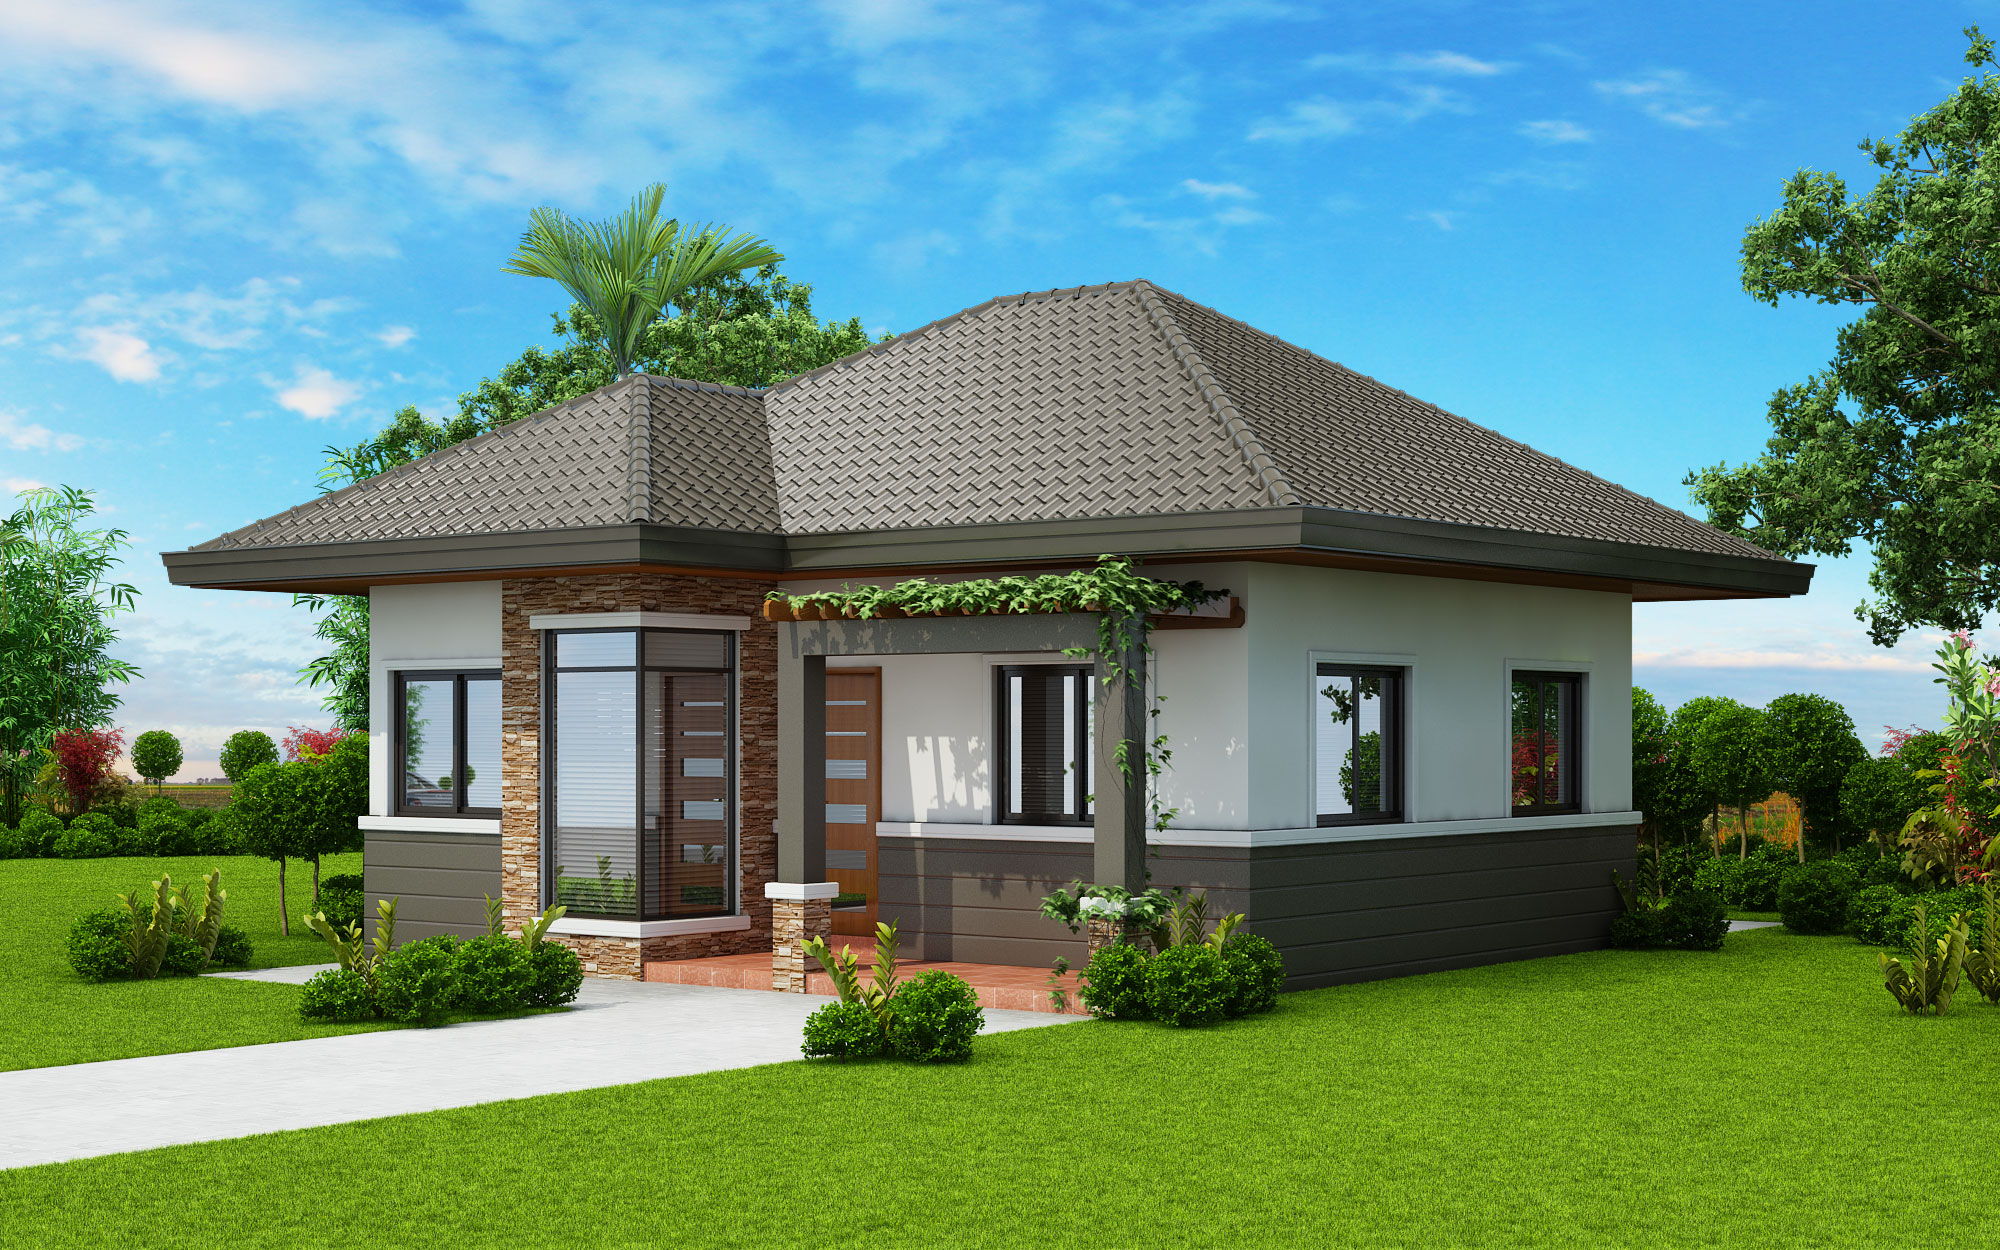 CHC18 012 Cam3 SLIDER - 11+ Indian Small House Design 2 Bedroom Gif